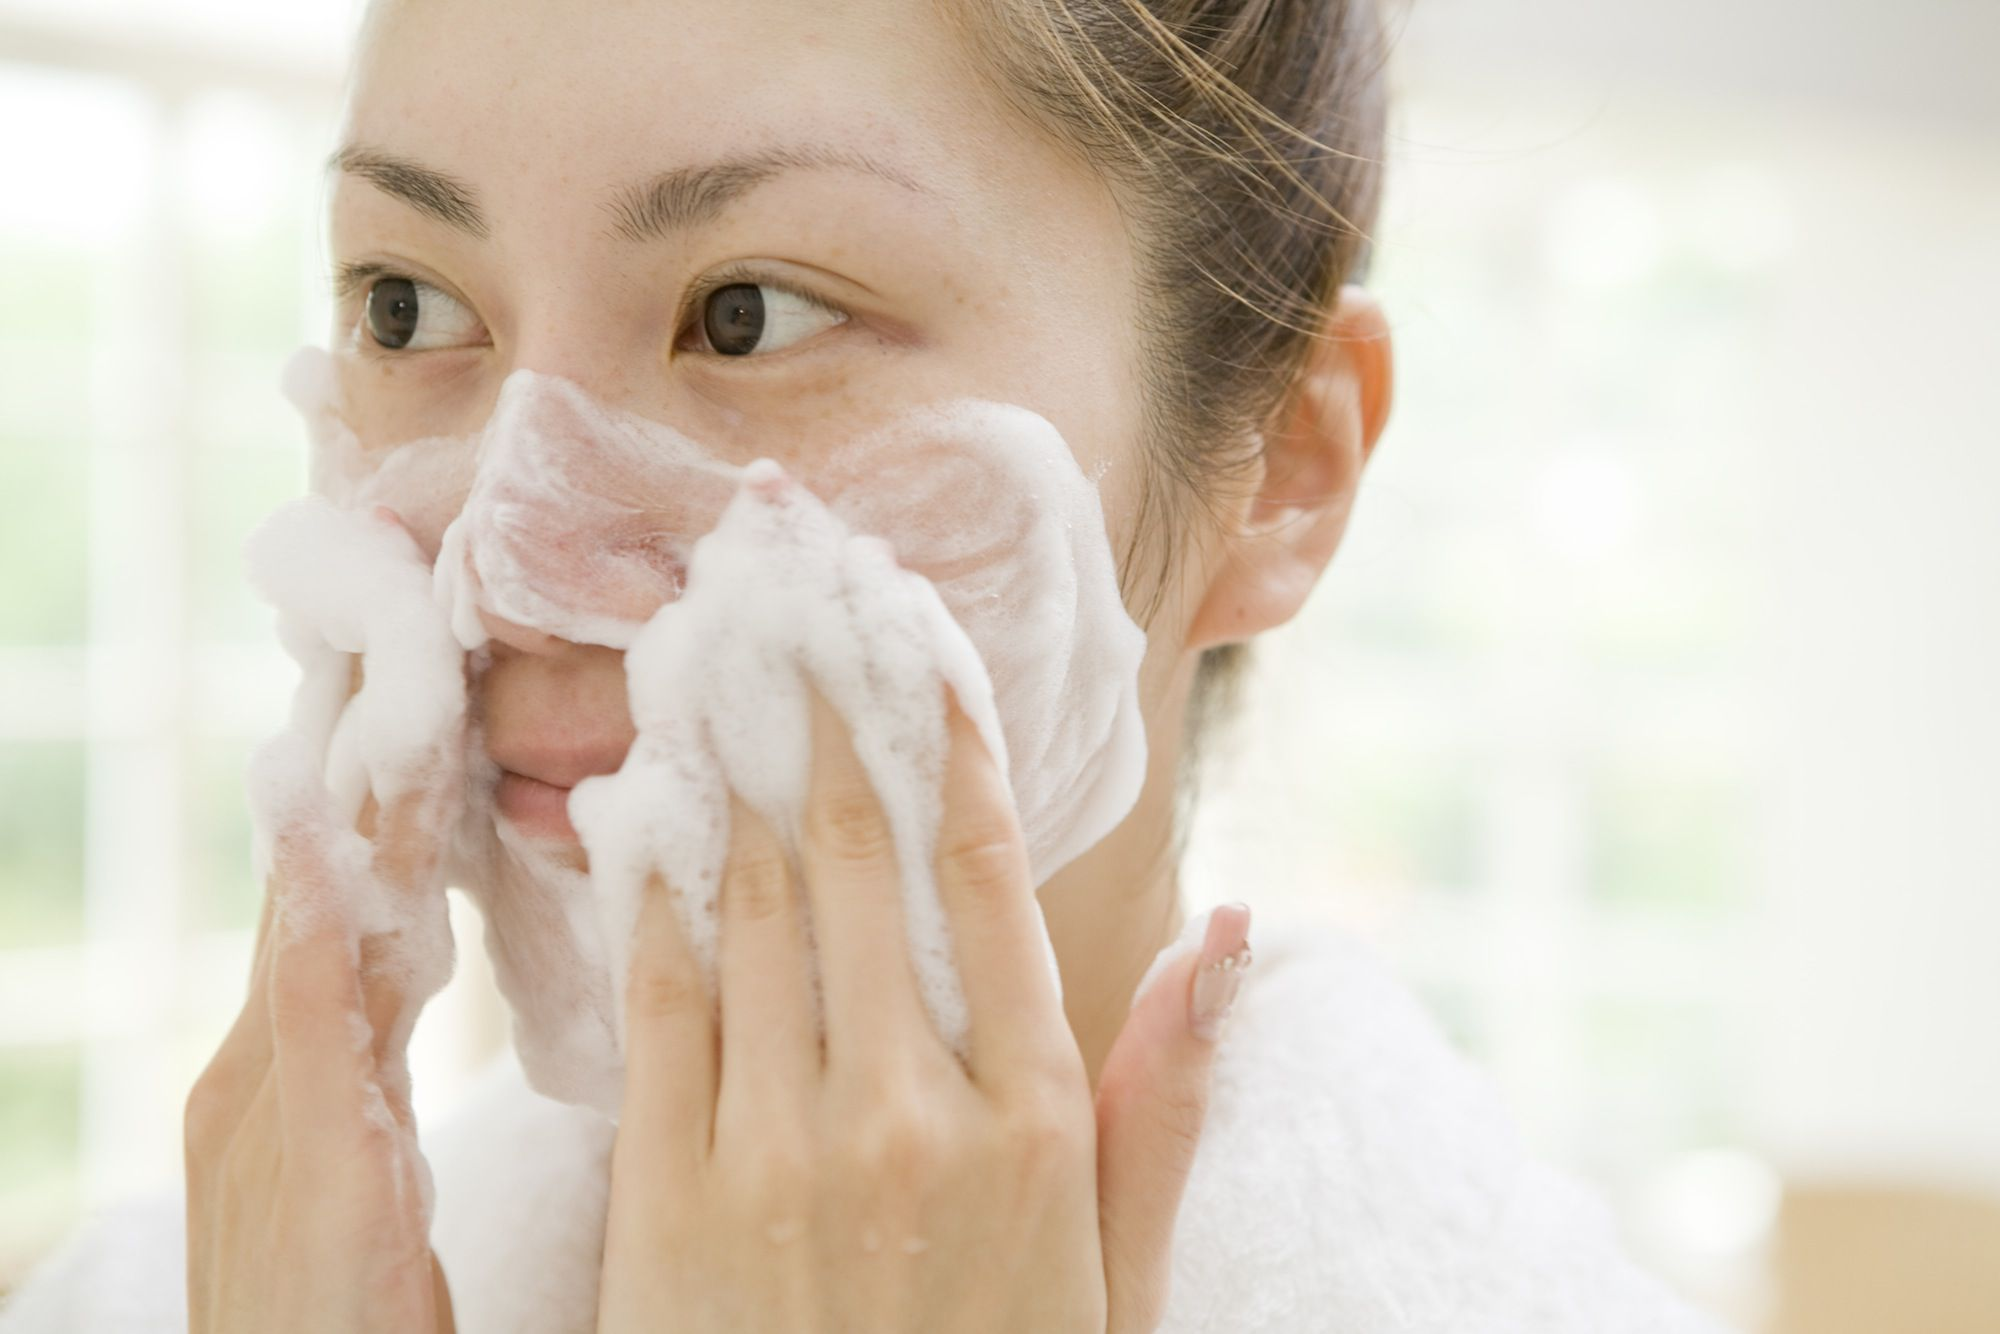 Daily Care Routines For Acne Prone Skin